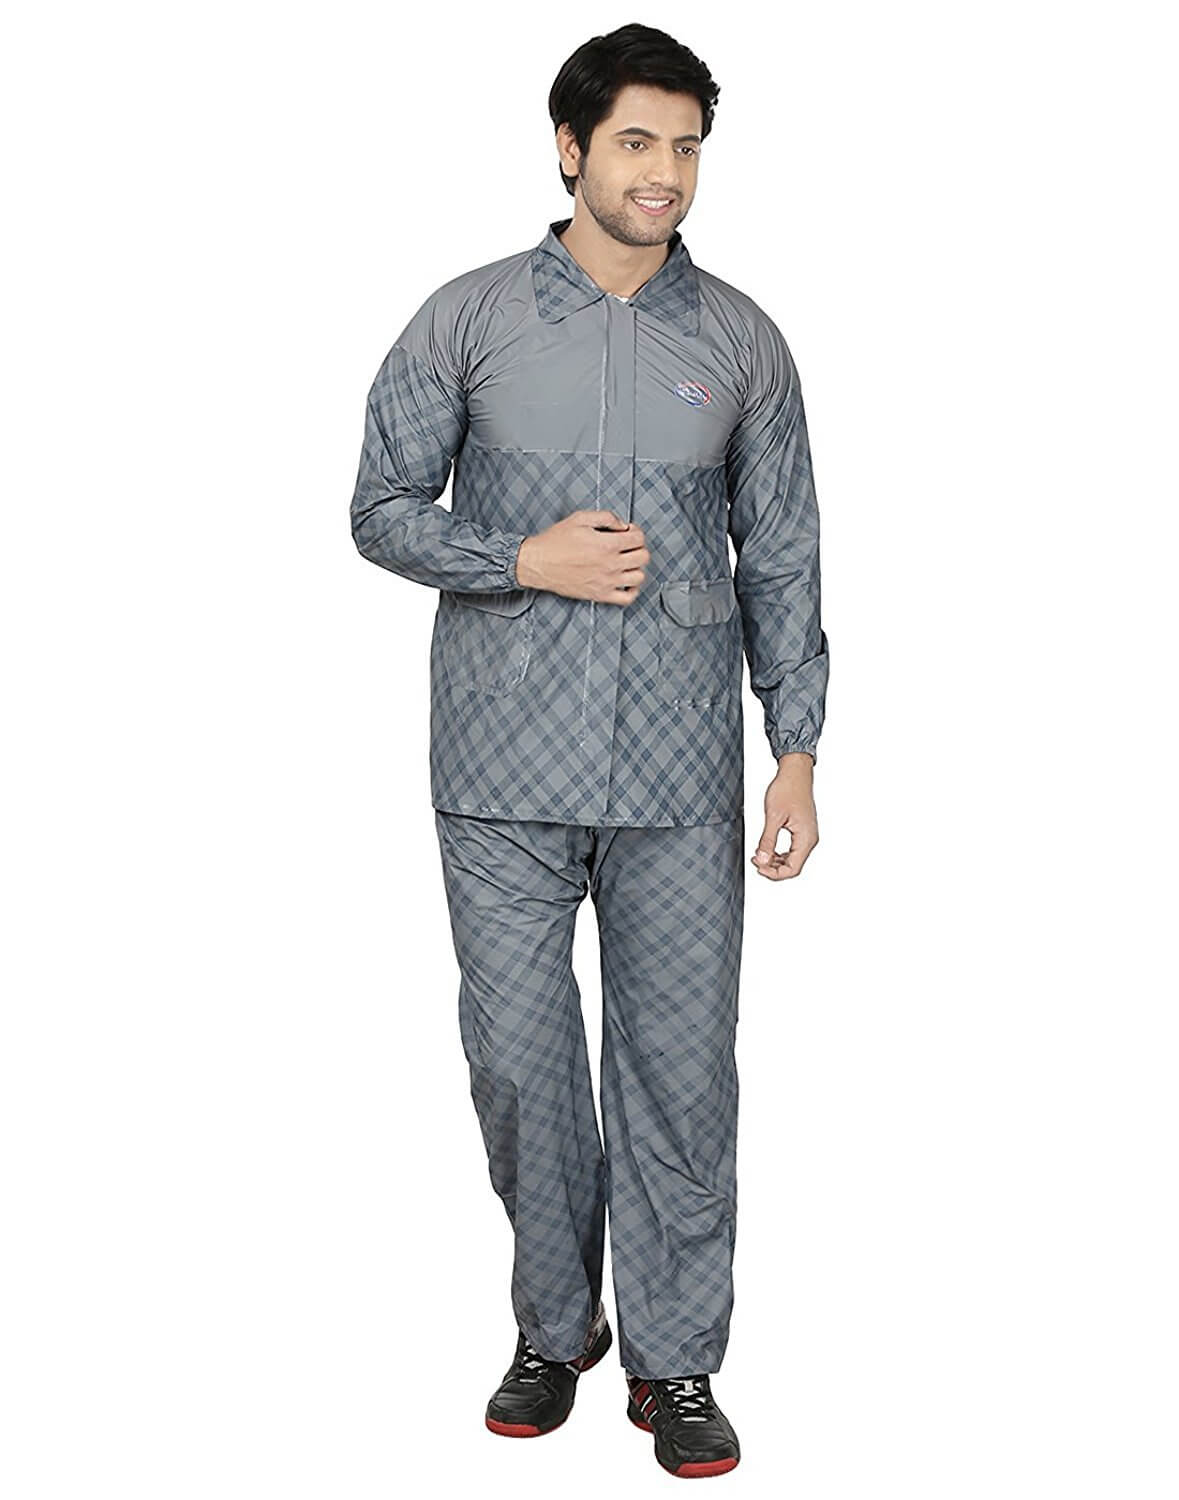 latest collection of rainsuit